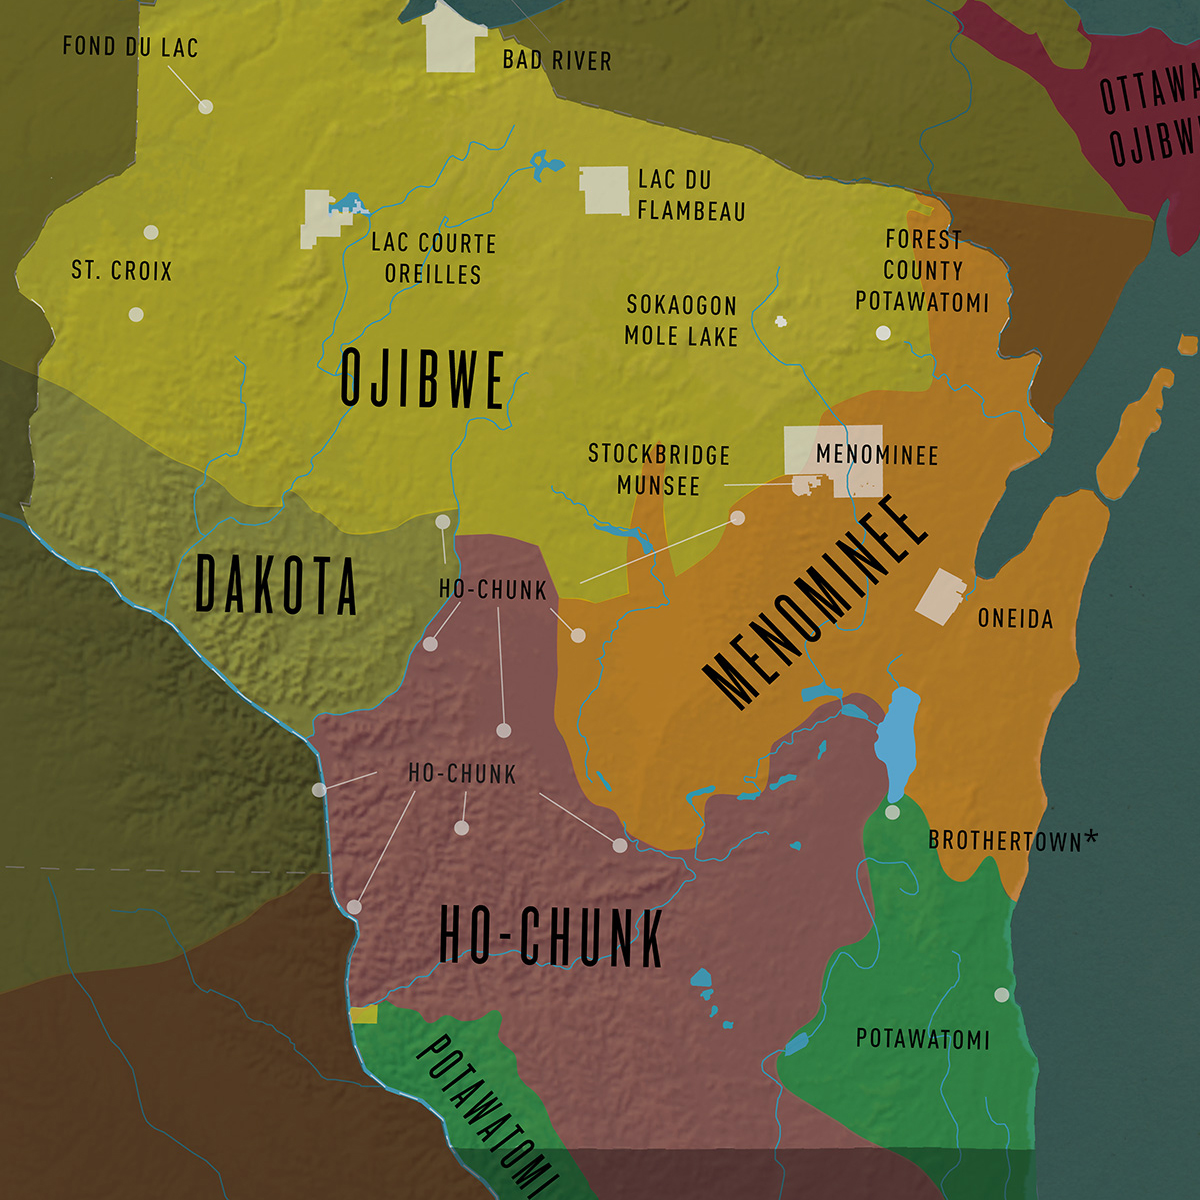 Map of the First Nations in Wisconsin